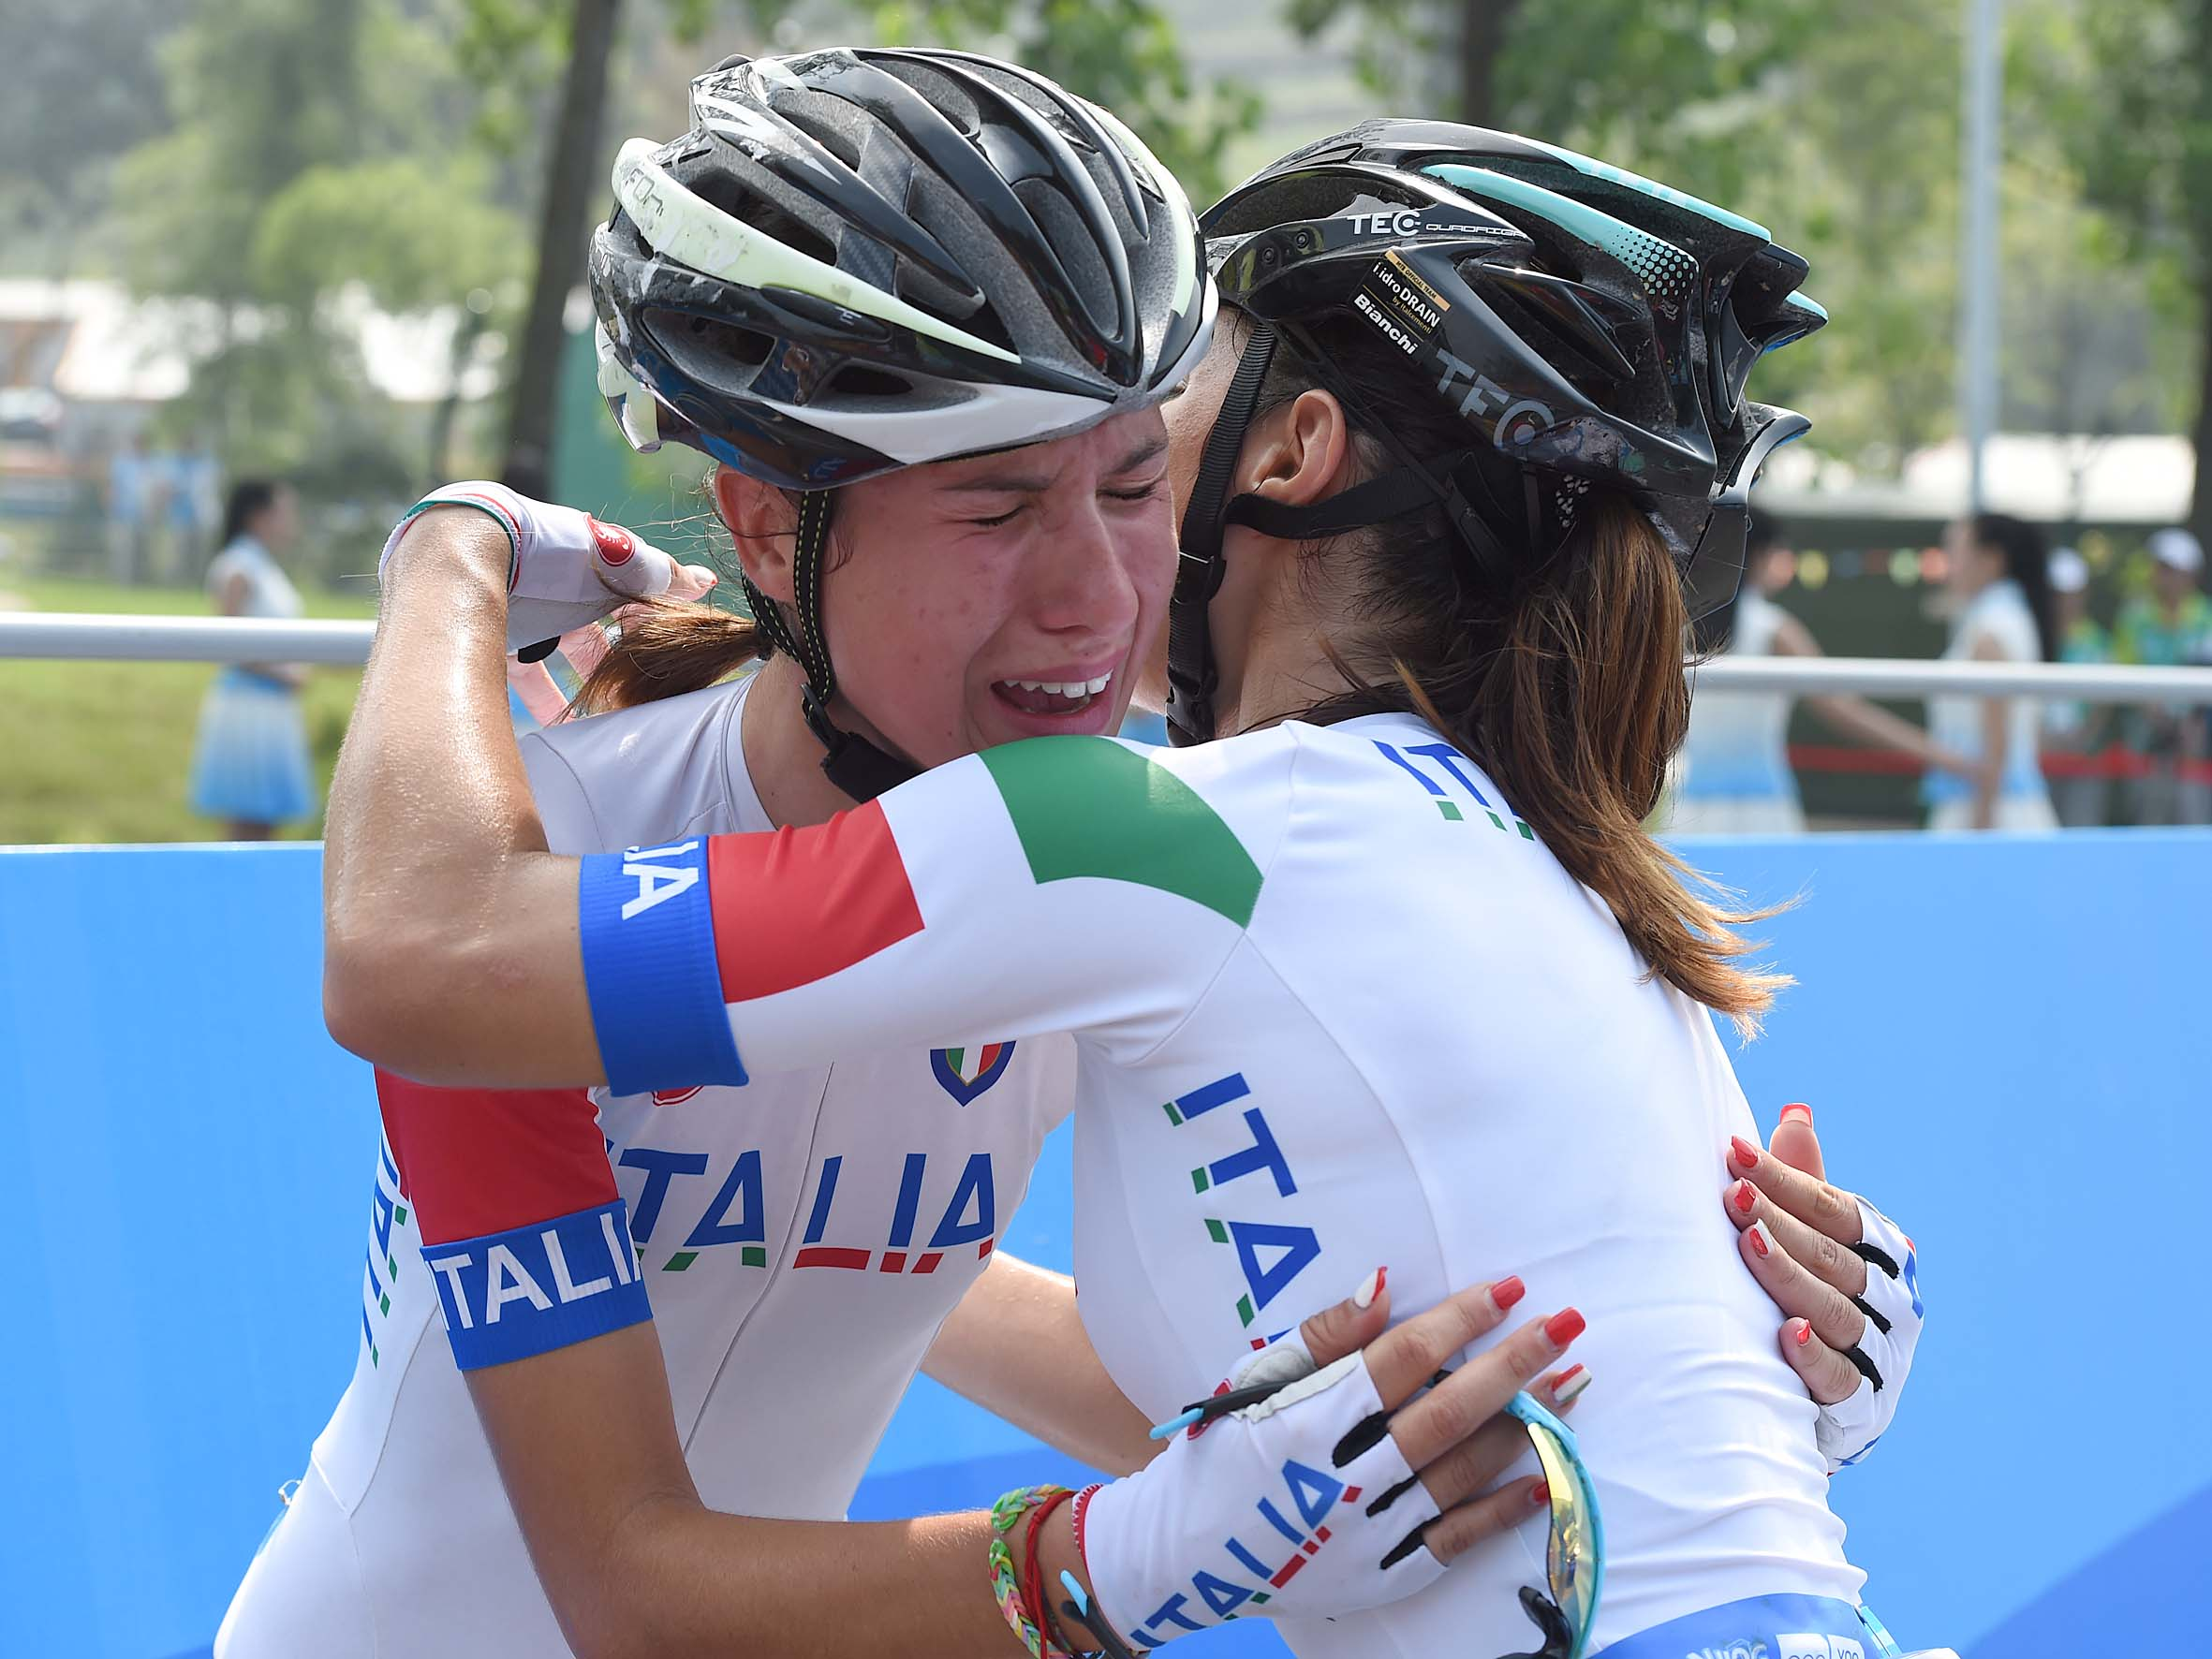 Ciclismo donne 07